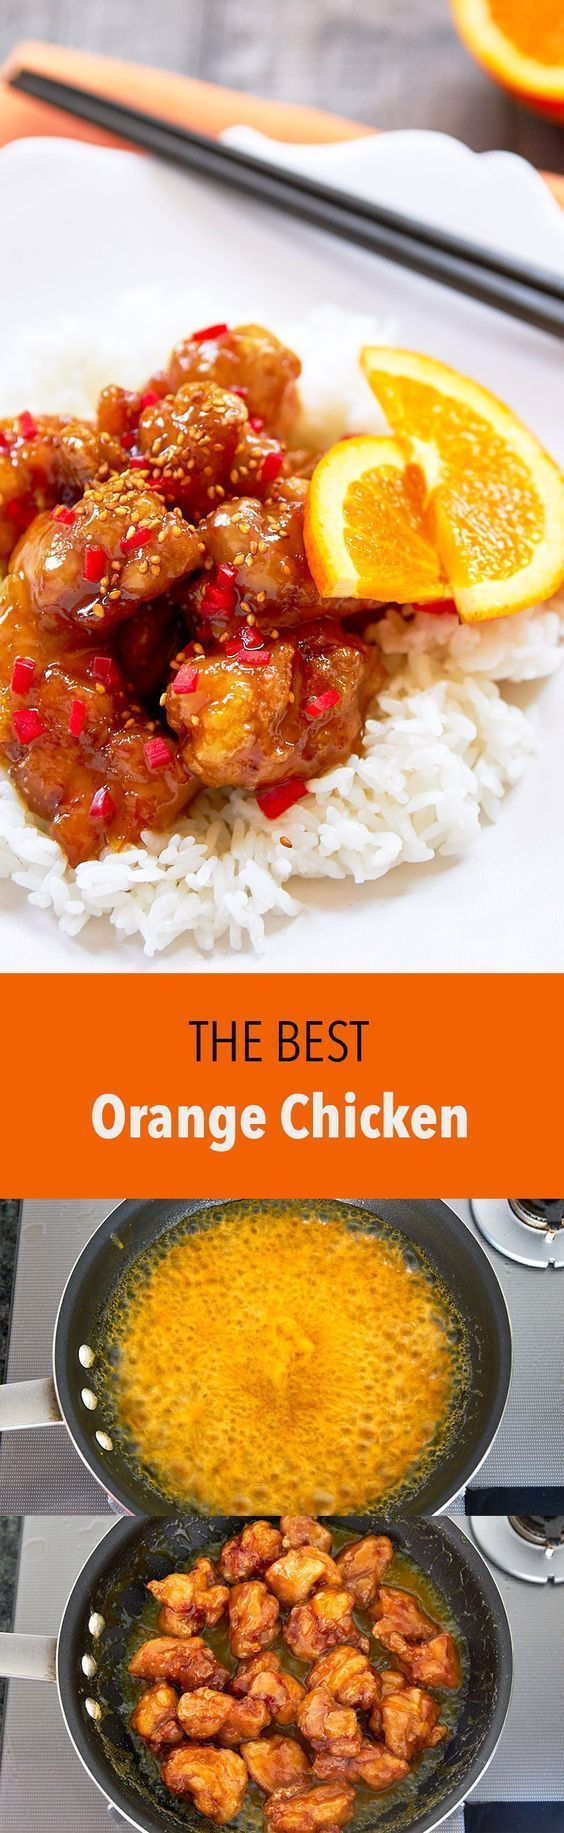 Best Orange Chicken #chineseorangechicken With orange juice, marmalade and orange zest in the sauce and big juicy pieces of ginger marinated chicken, this easy Orange Chicken beats take-out Chinese. #chineseorangechicken Best Orange Chicken #chineseorangechicken With orange juice, marmalade and orange zest in the sauce and big juicy pieces of ginger marinated chicken, this easy Orange Chicken beats take-out Chinese. #chineseorangechicken